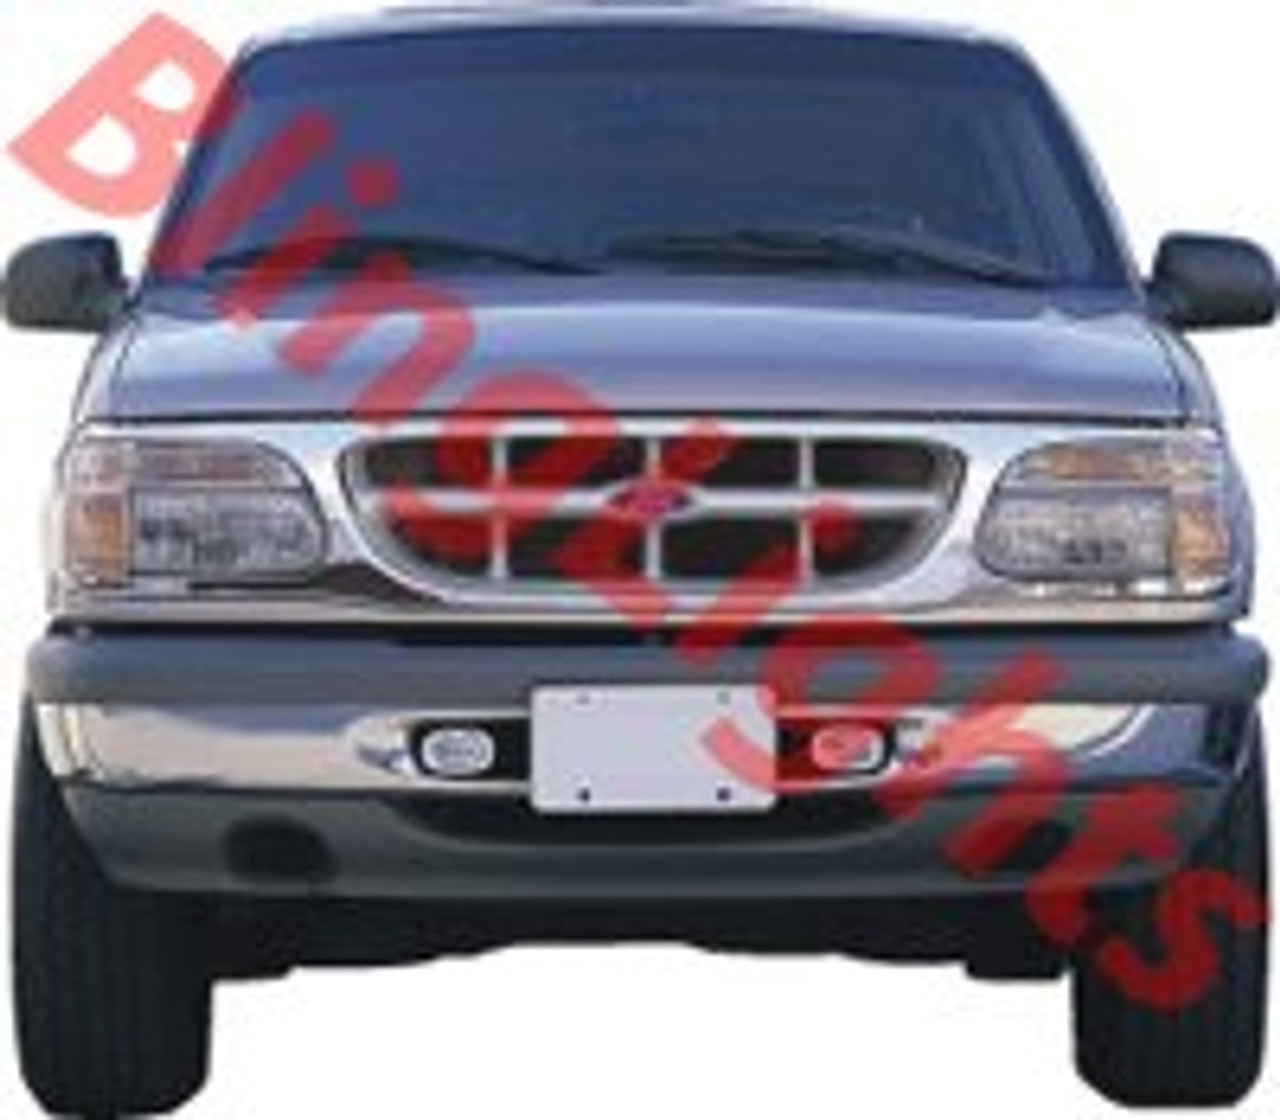 1995 1996 1997 1998 1999 Ford Explorer Drivinglights Driving Lamps Lights Kit